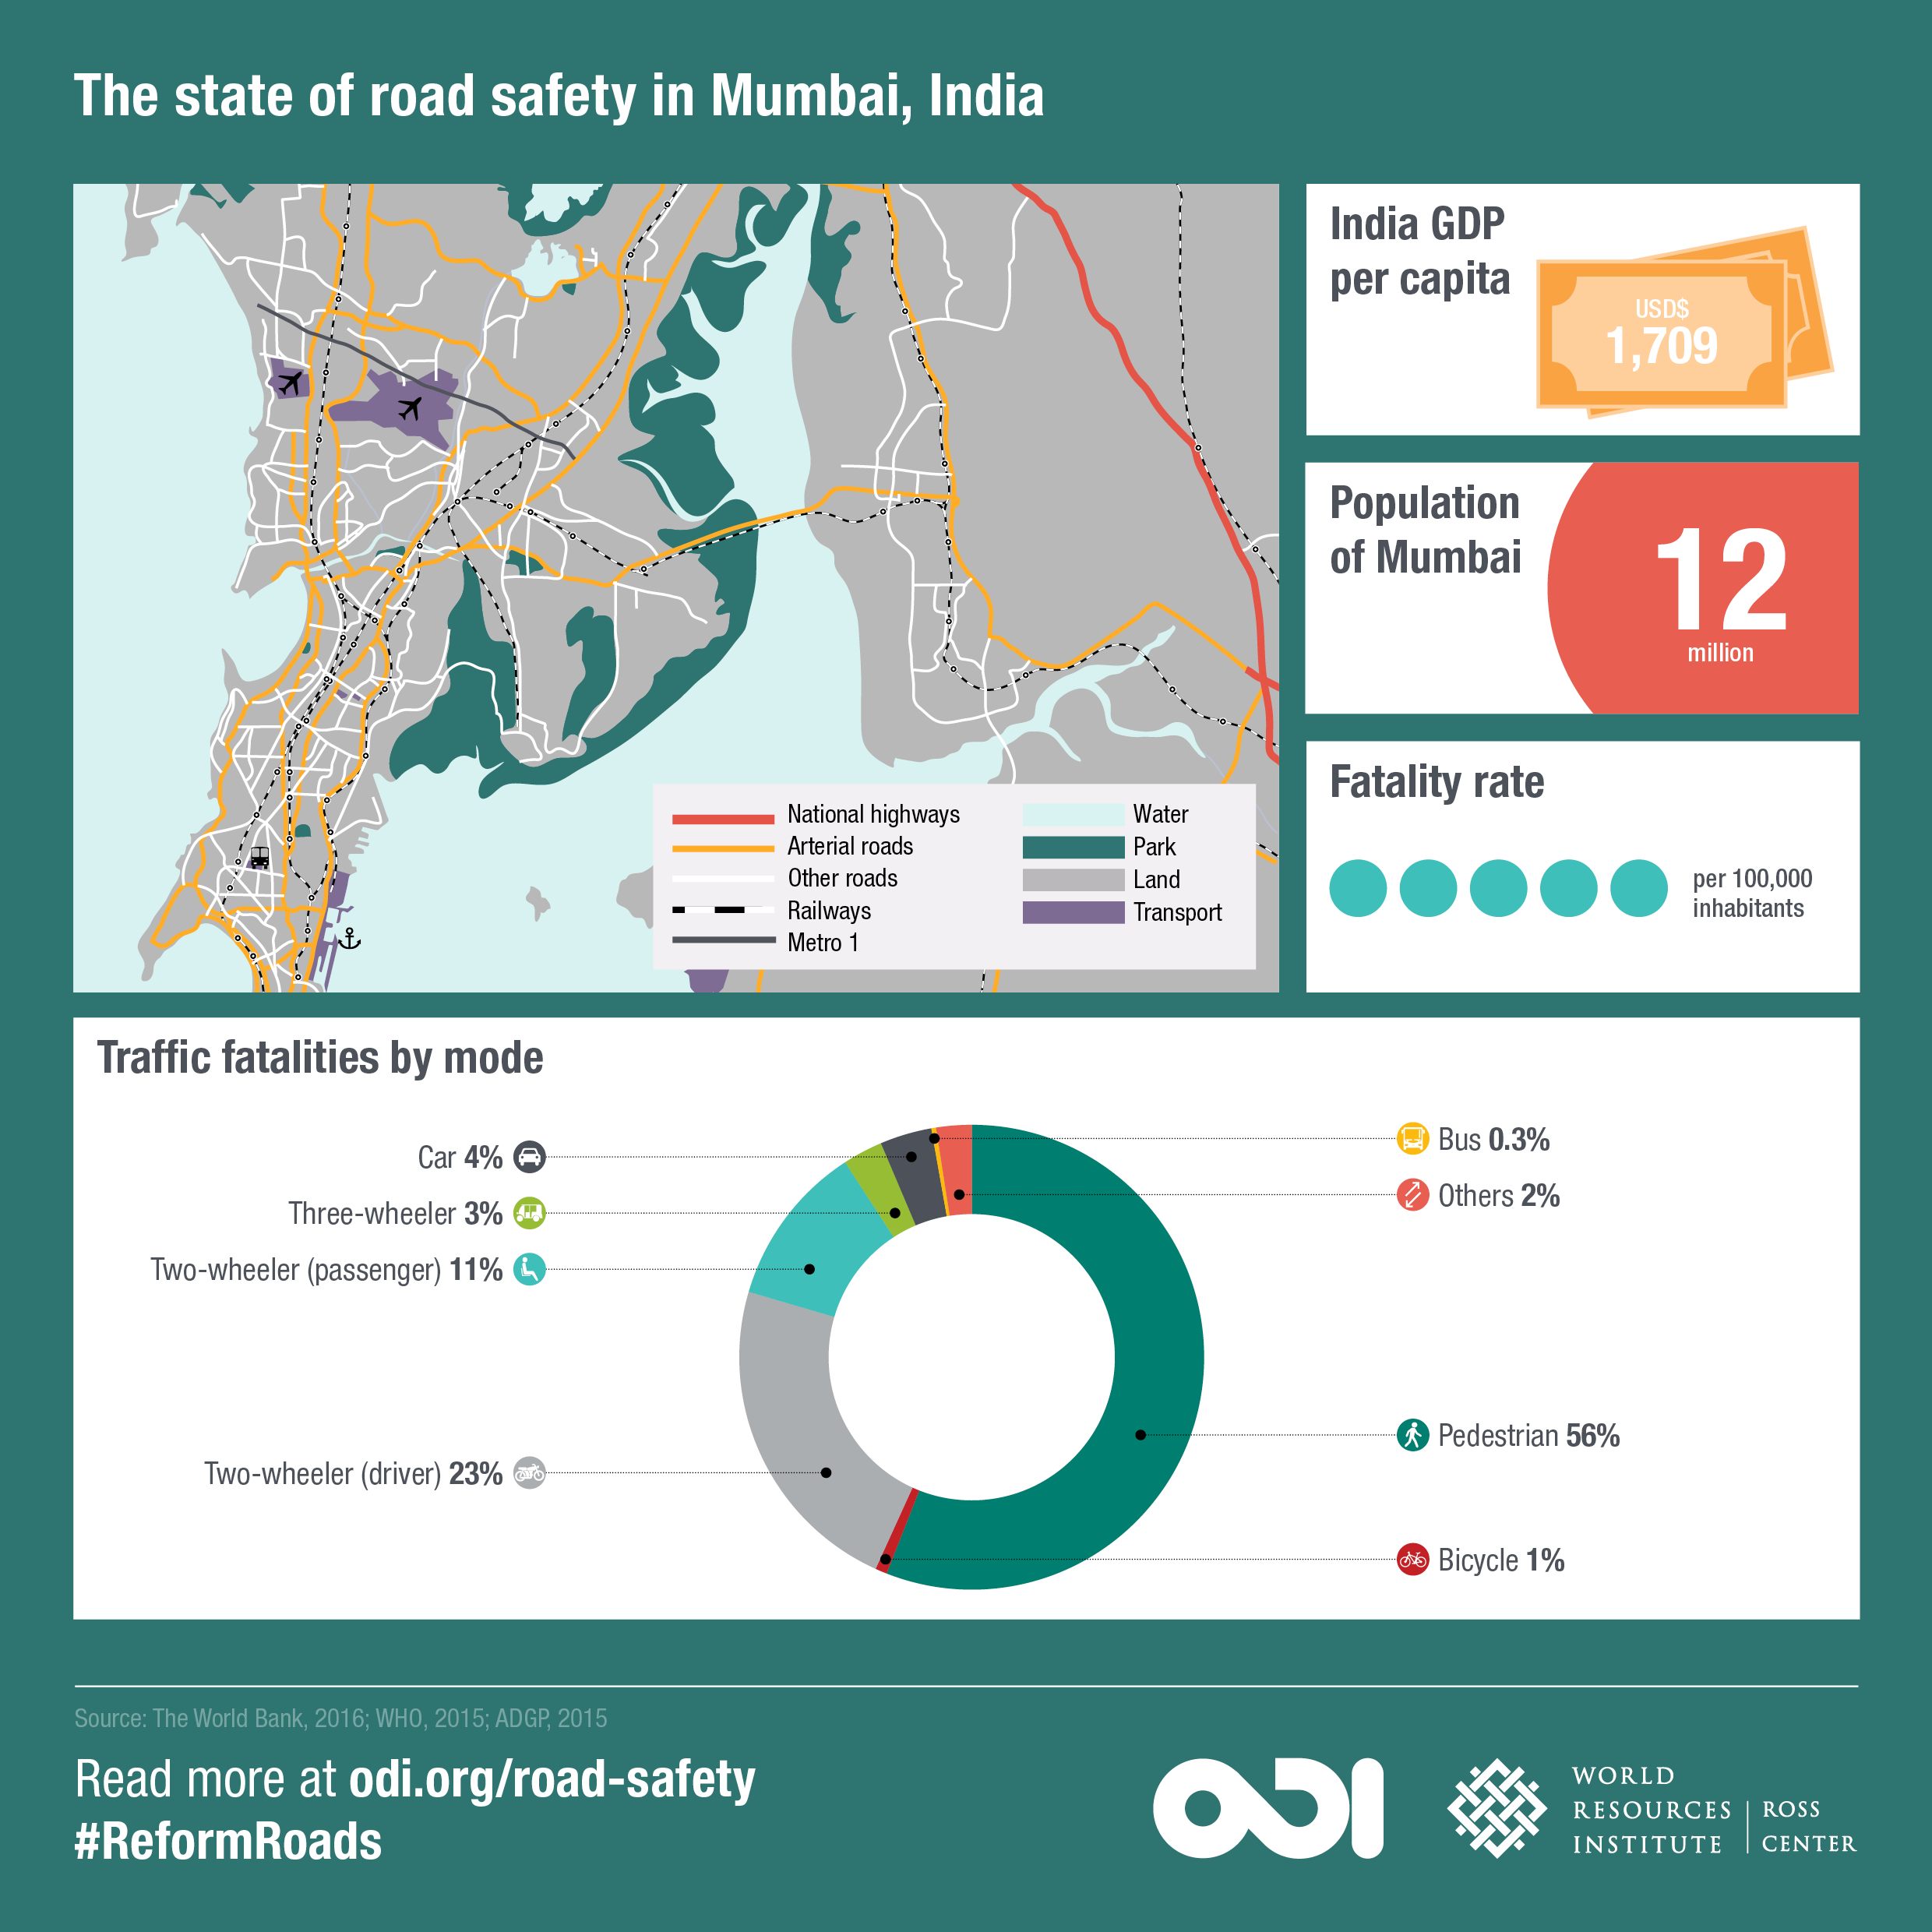 The state of road safety in Mumbai. Image: ODI and WRI